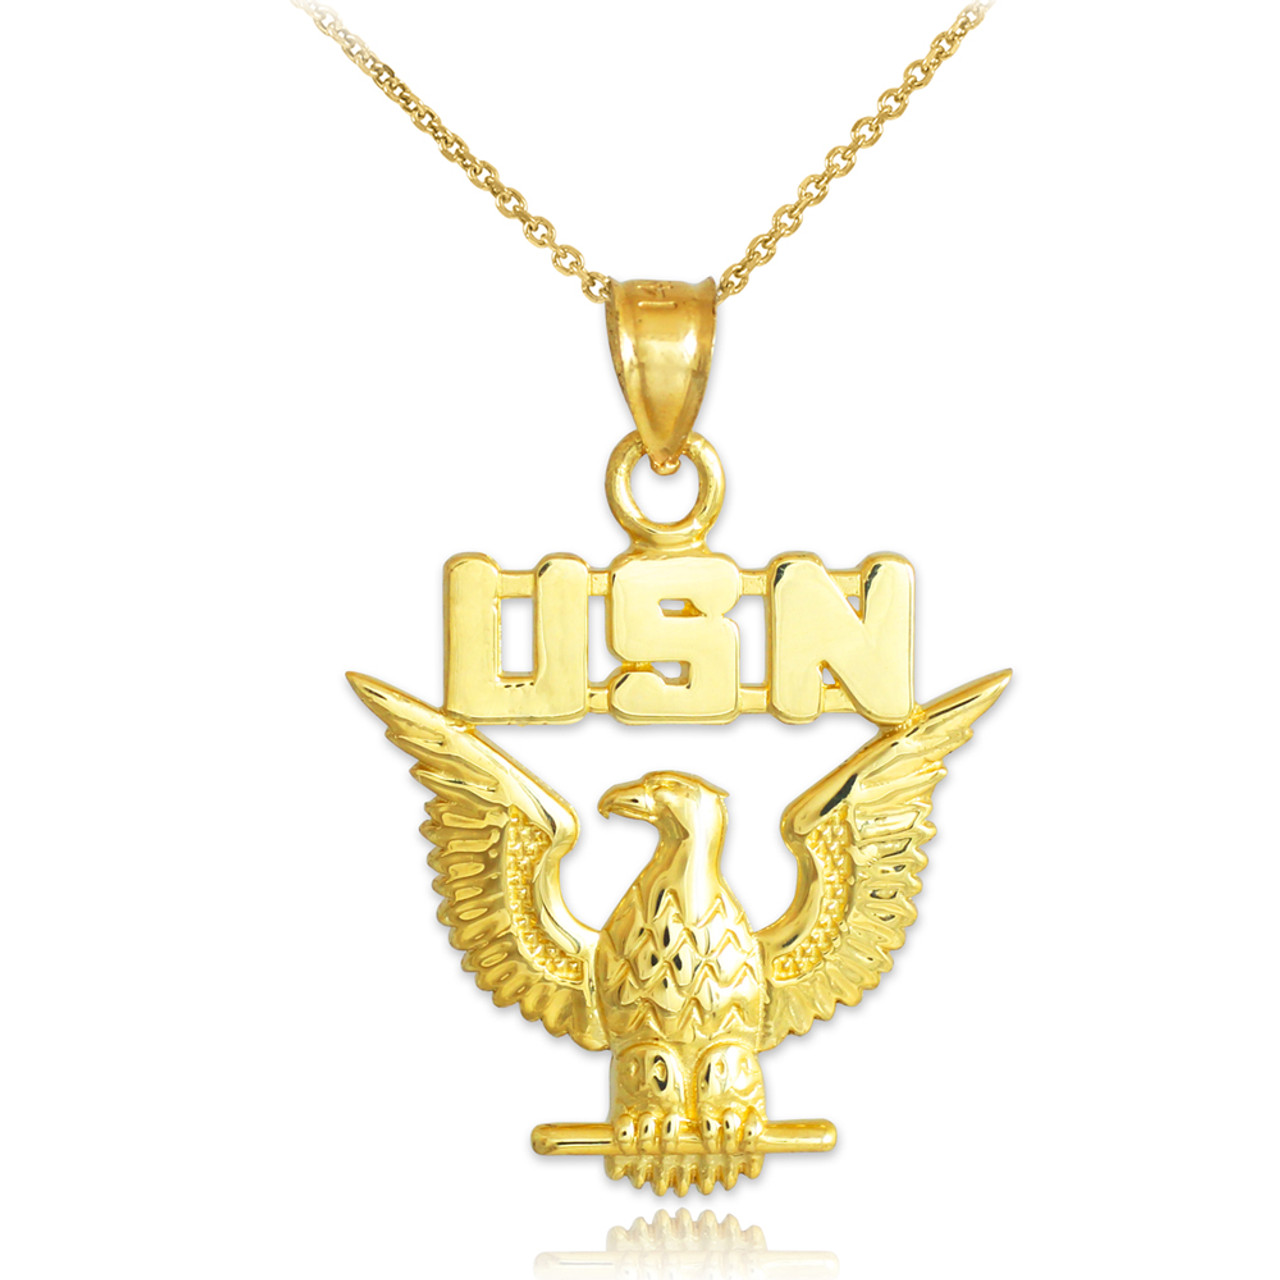 Us navy pendant gold gold us navy pendant necklace aloadofball Choice Image